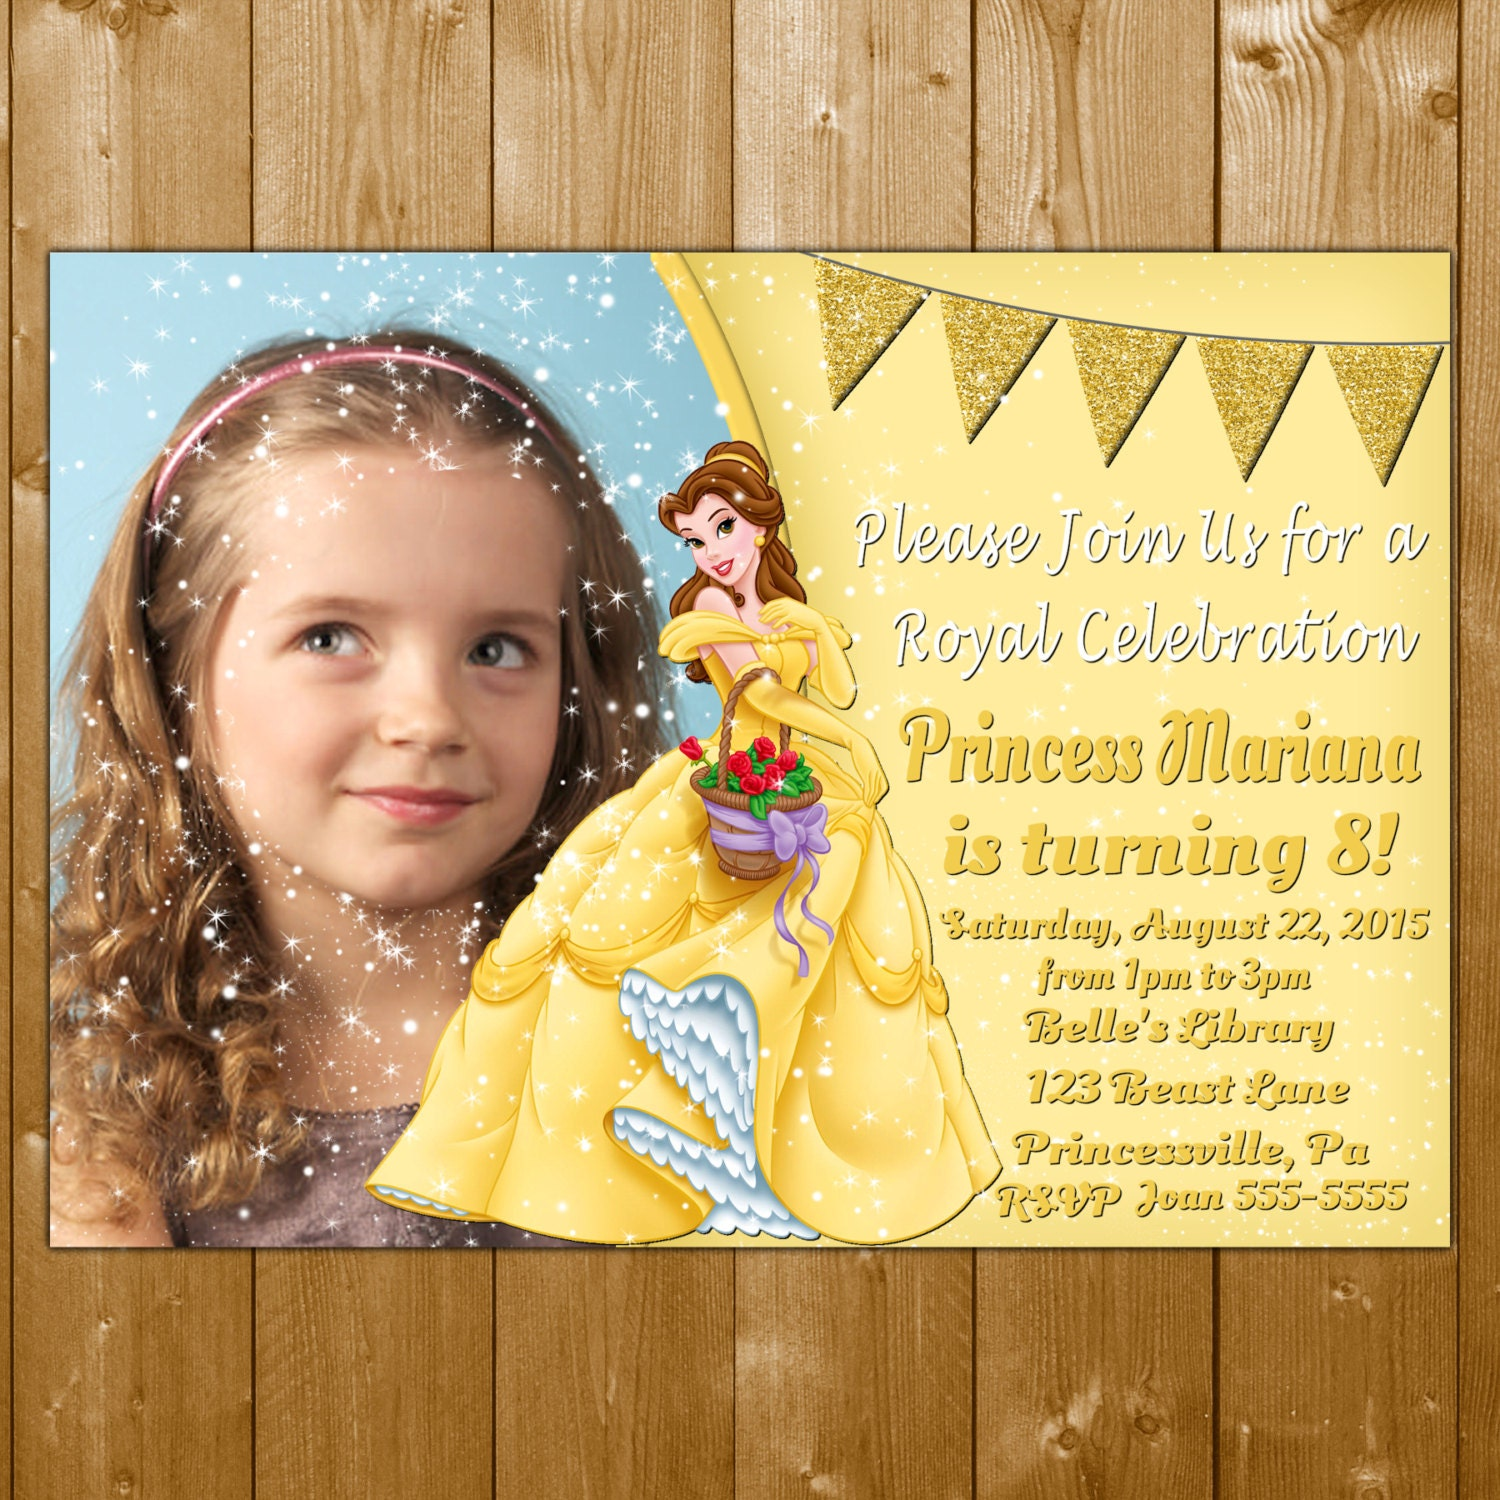 Belle invitation princess belle invitations belle invitation belle invitation princess belle invitations belle invitation belle birthday invitation photo with glitter sparkles belle invite filmwisefo Images